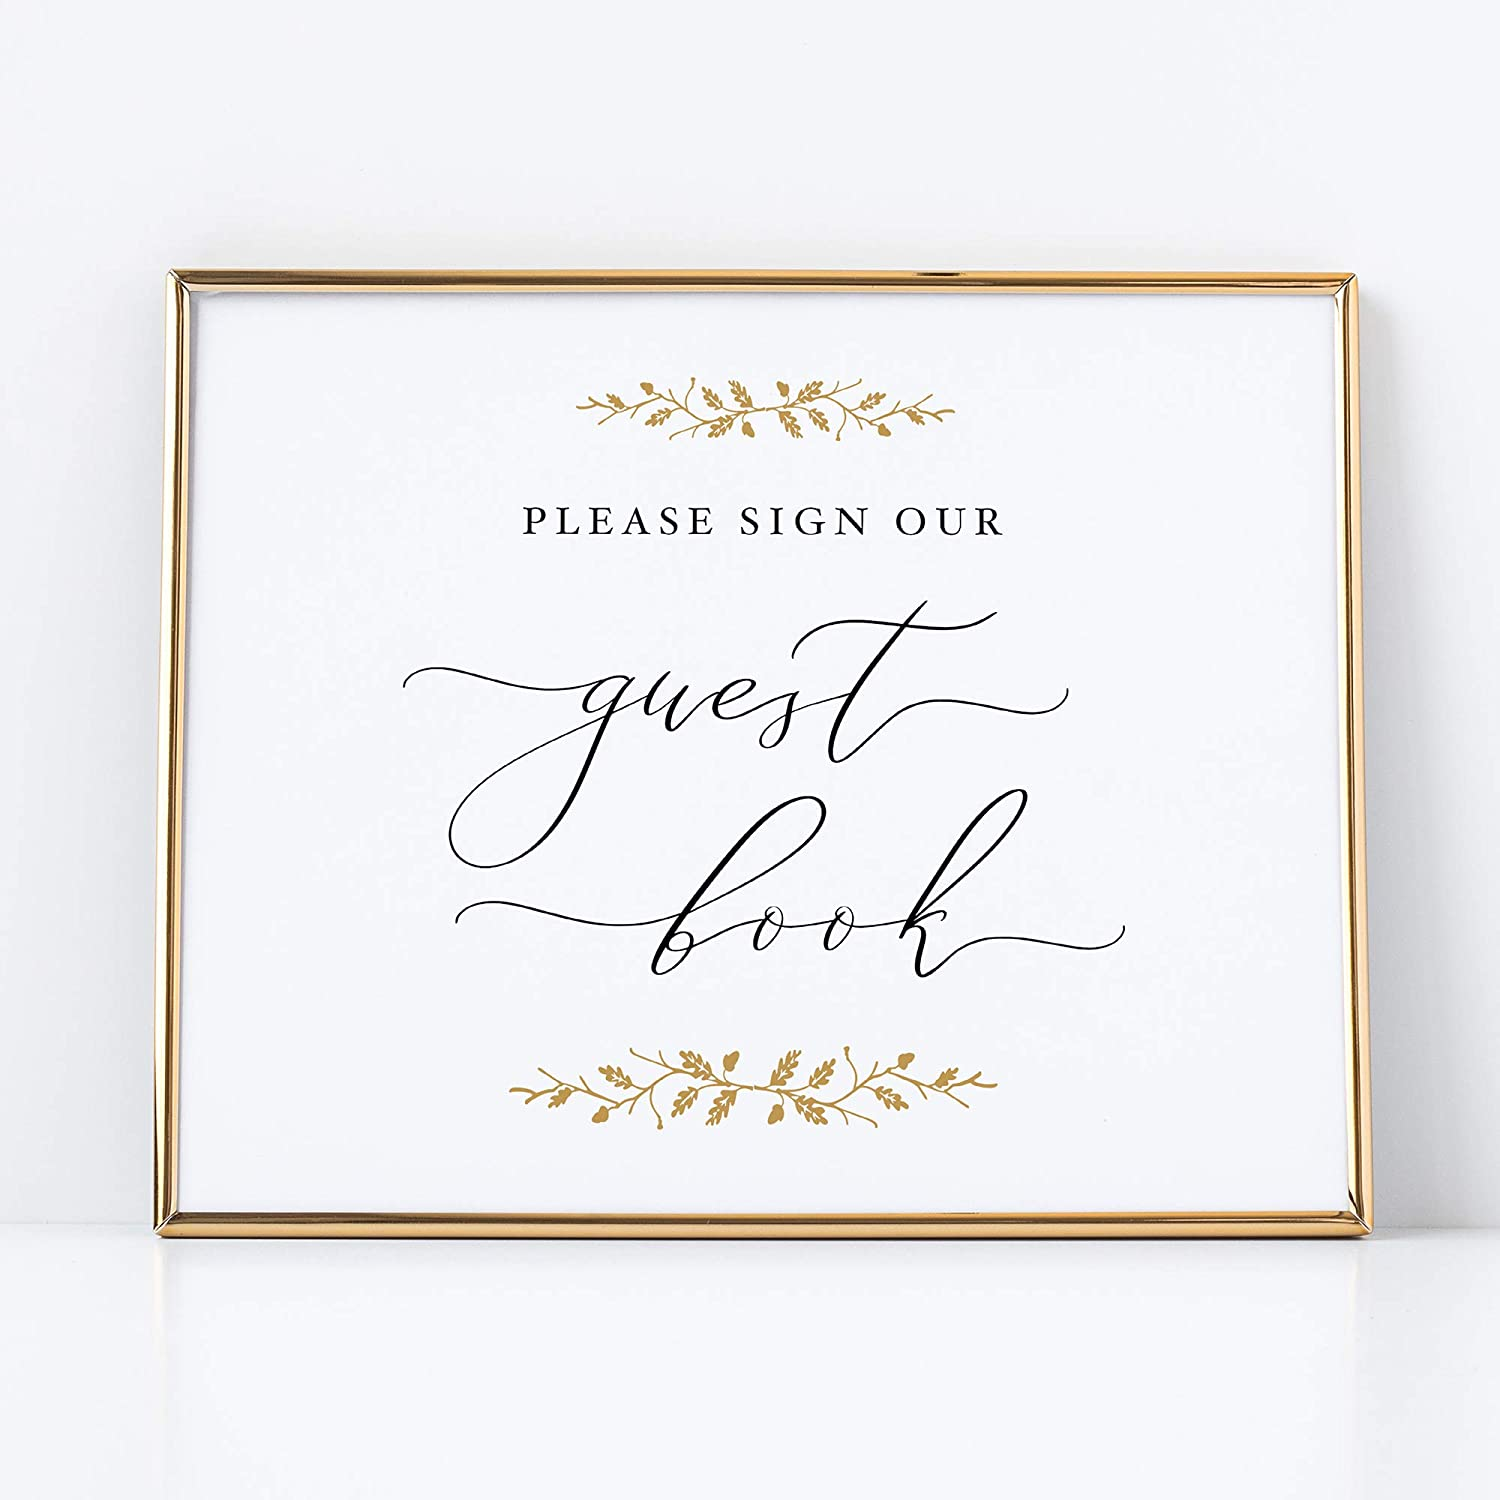 Please Sign our Guestbook Sign for Weddings 8x10 Pearl with Gold Accents Printed on Professional Thick Pearlescent Cardstock Wedding Decoration UNFRAMED Elegant Style